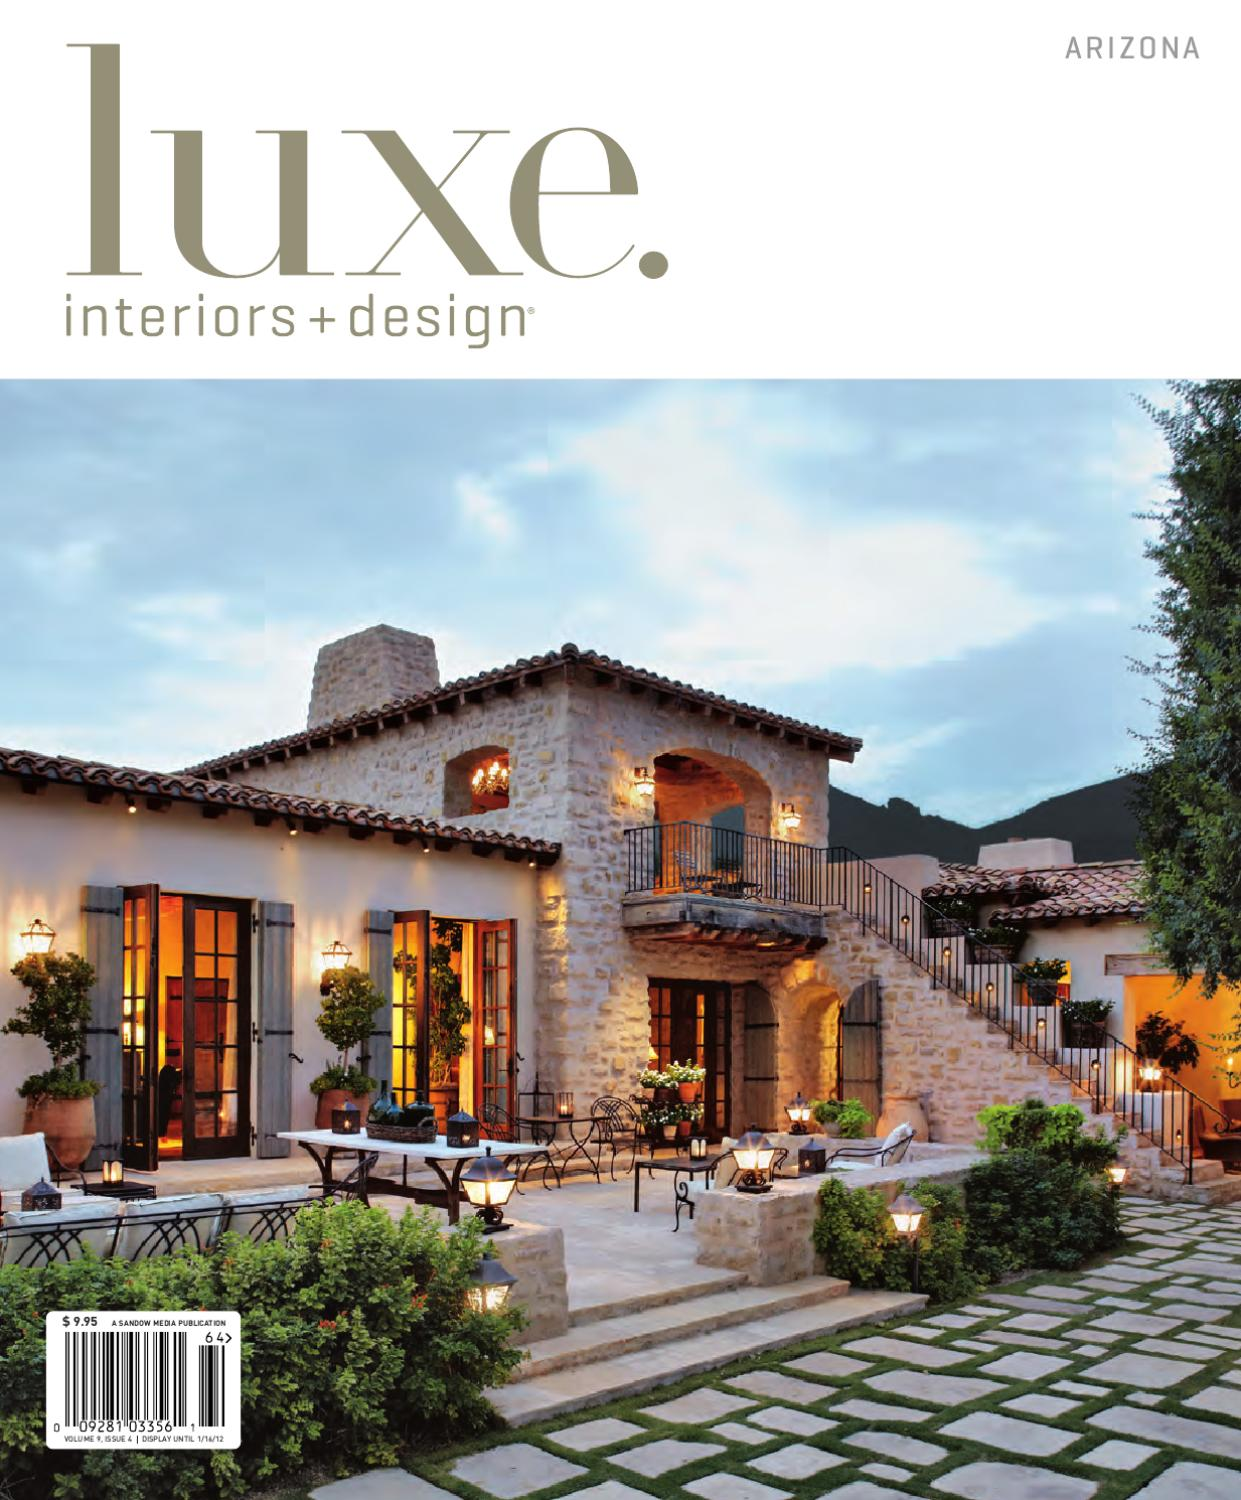 97c00a636fe LUXE Interior + Design Arzona 13 by sandow media - issuu